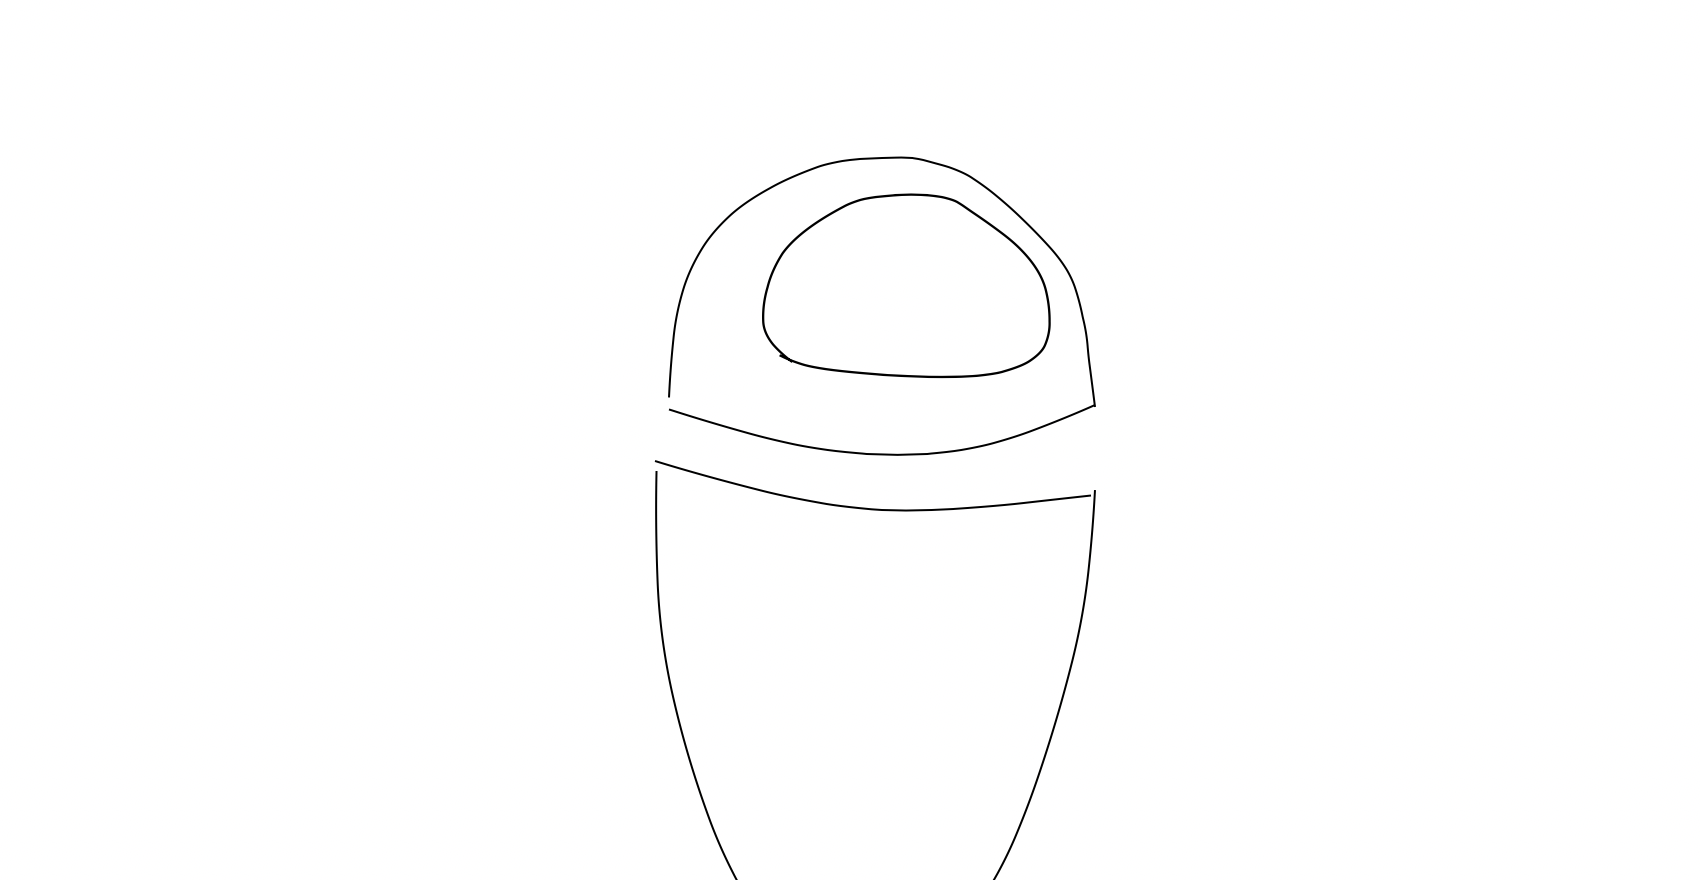 STEP 5 - Draw the face plate, flattening the bottom of the shape a little